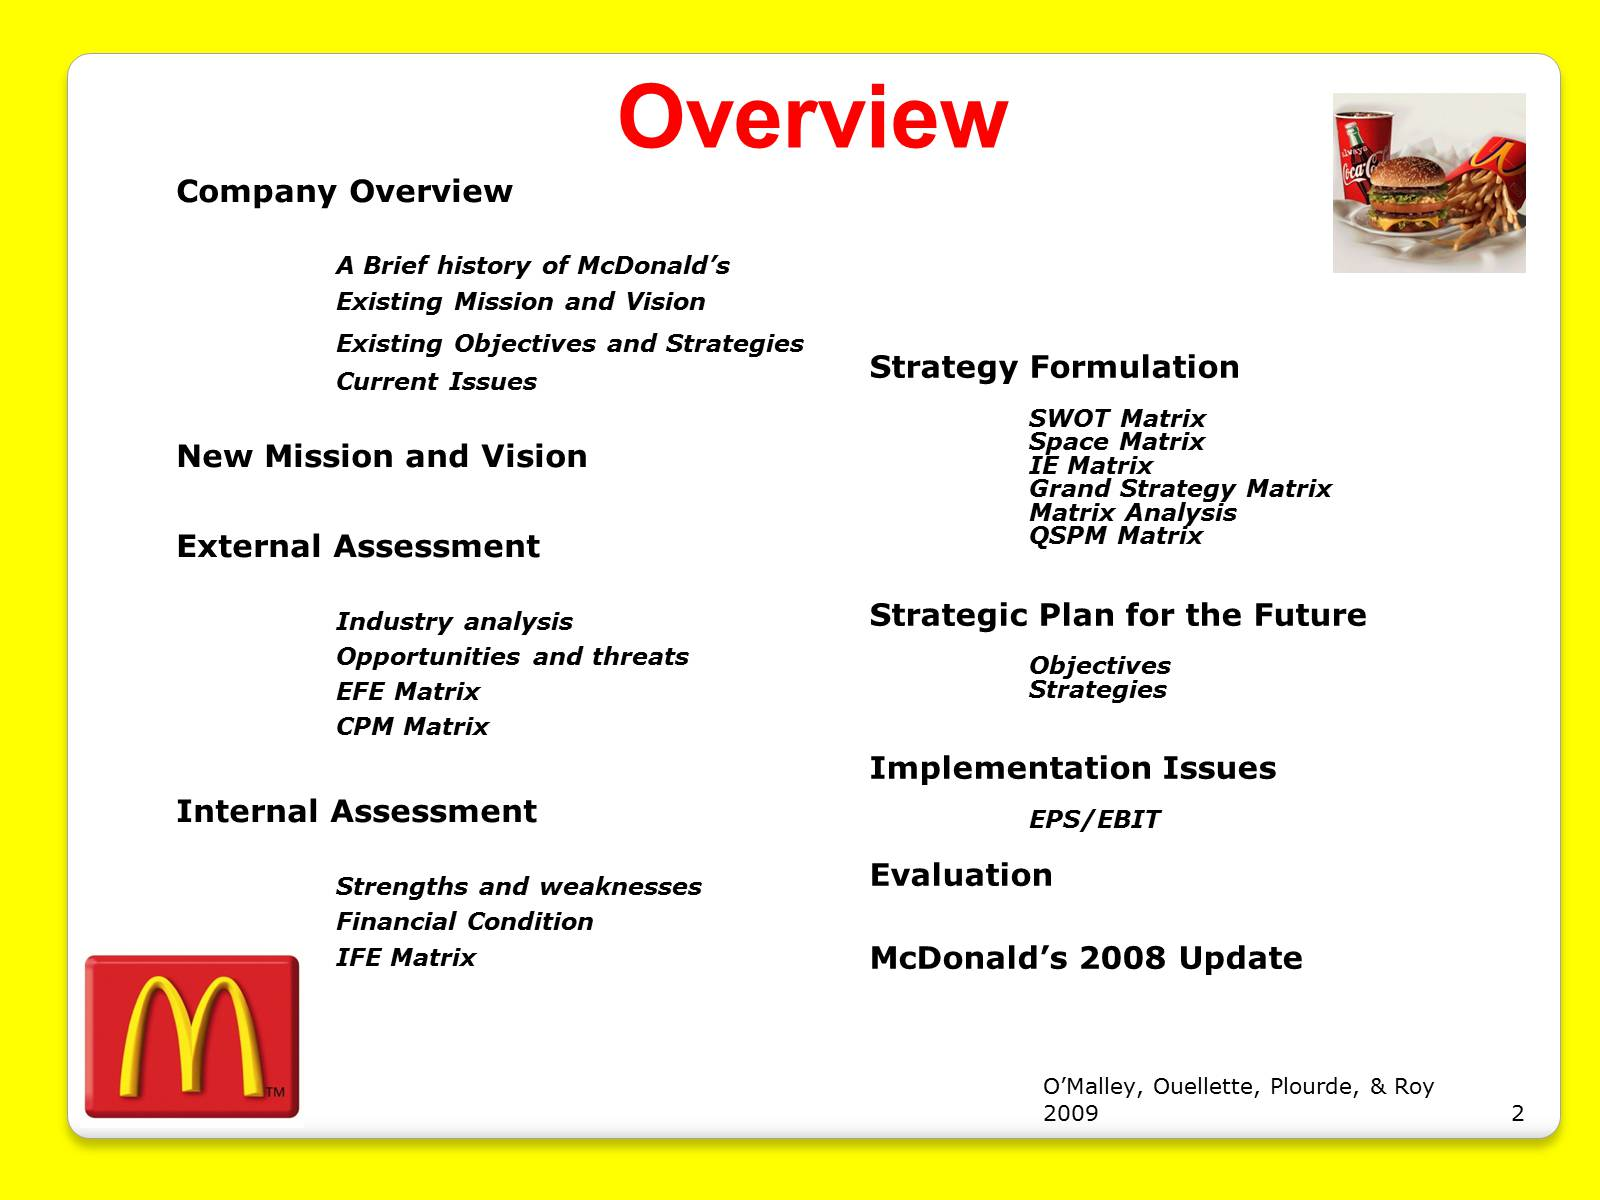 an overview and swot analysis of mcdonalds Swot analysis mcdonald's vs burger king organizational diagnosis by fastalk consultants in diagnosing the mcdonald's organization, the first issue we will examine is their company goals mcdonald's has a goal of one hundred percent total customer satisfaction.